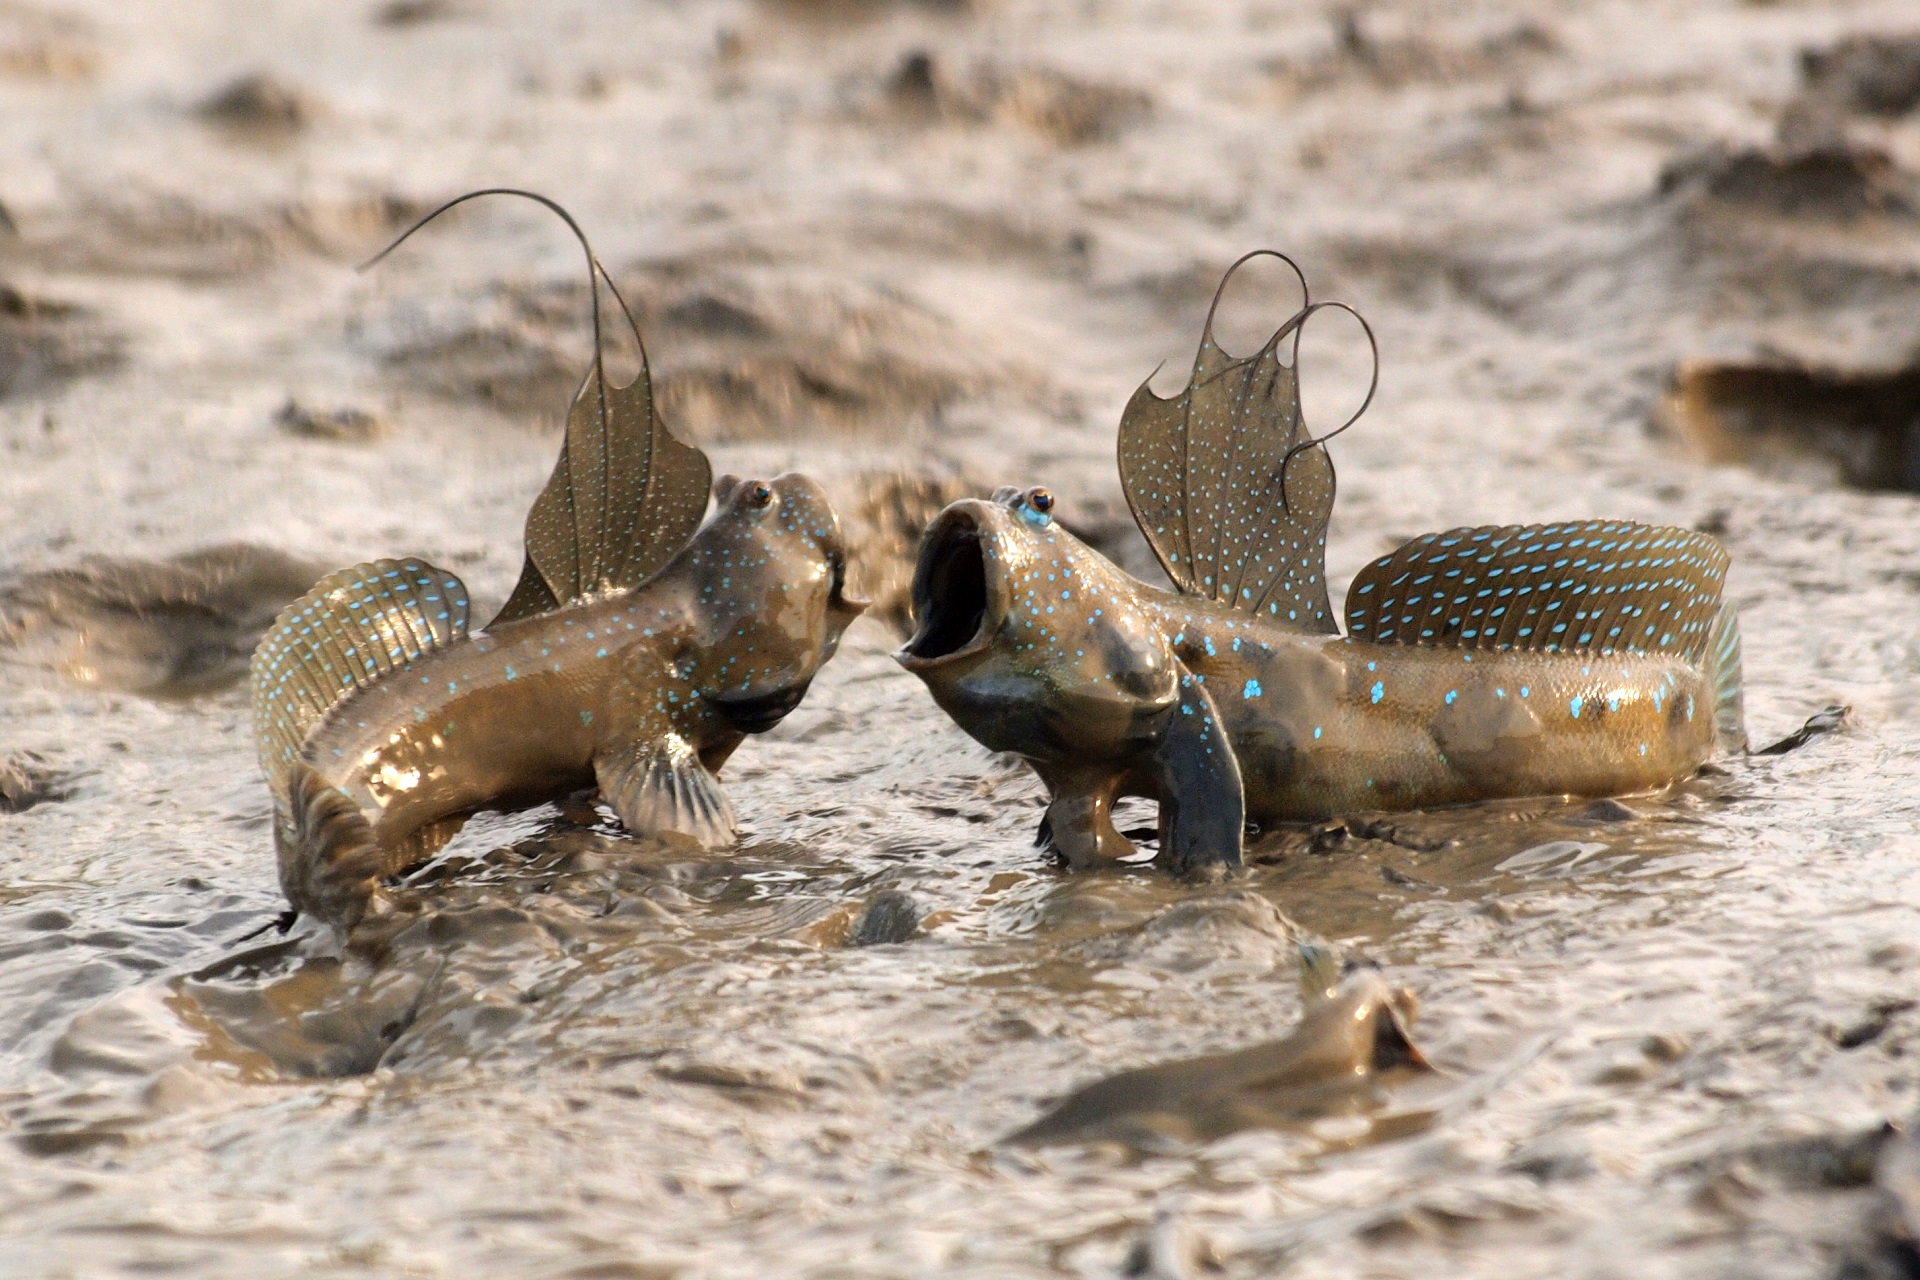 mudskippers fish wallpaper background images wallpapers